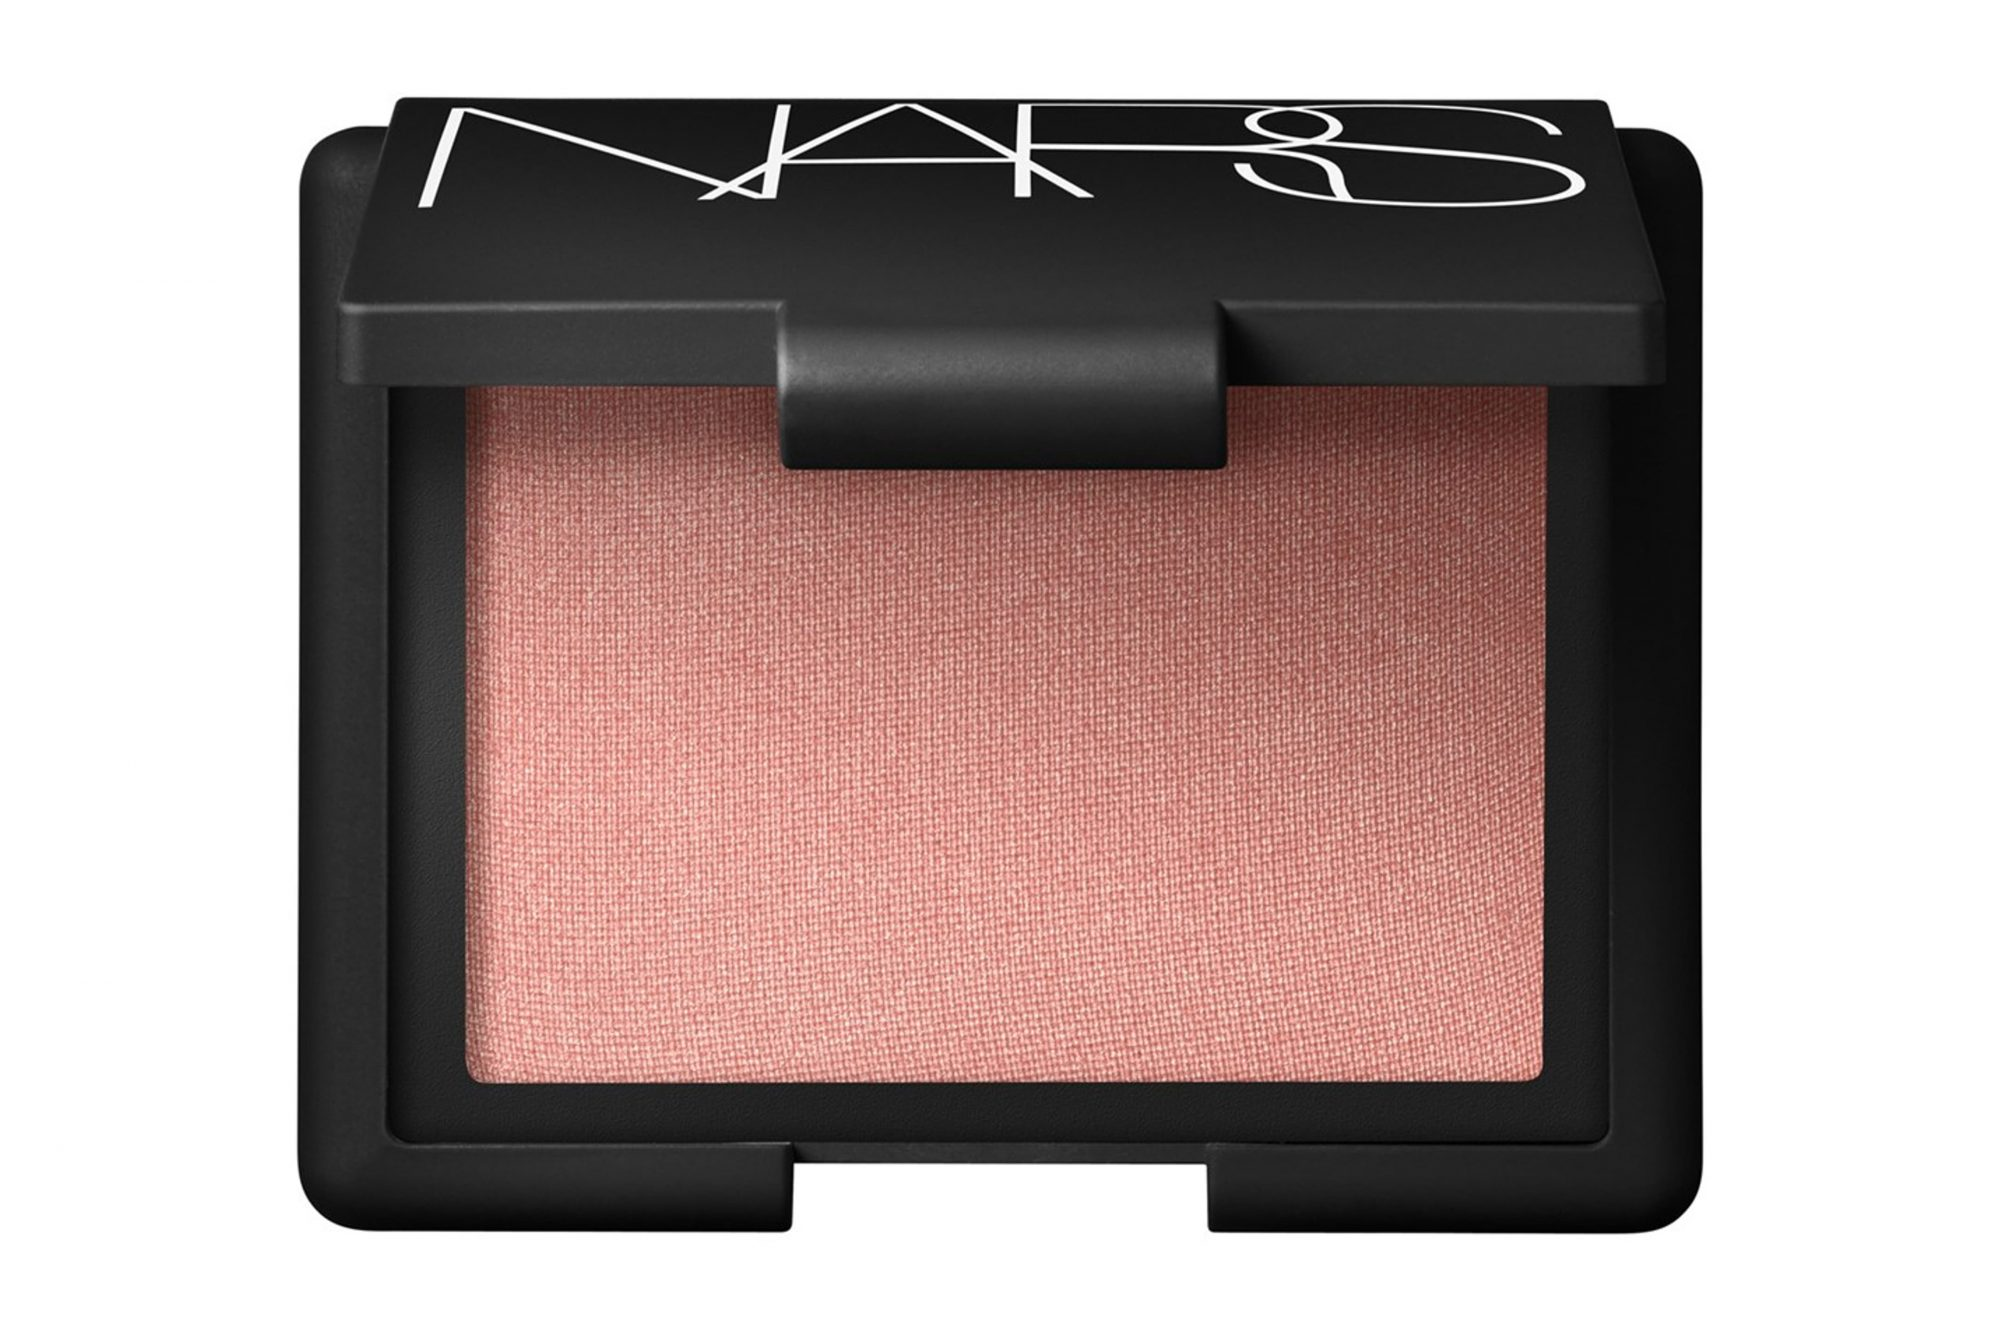 iconic-beauty-products-nars.jpg